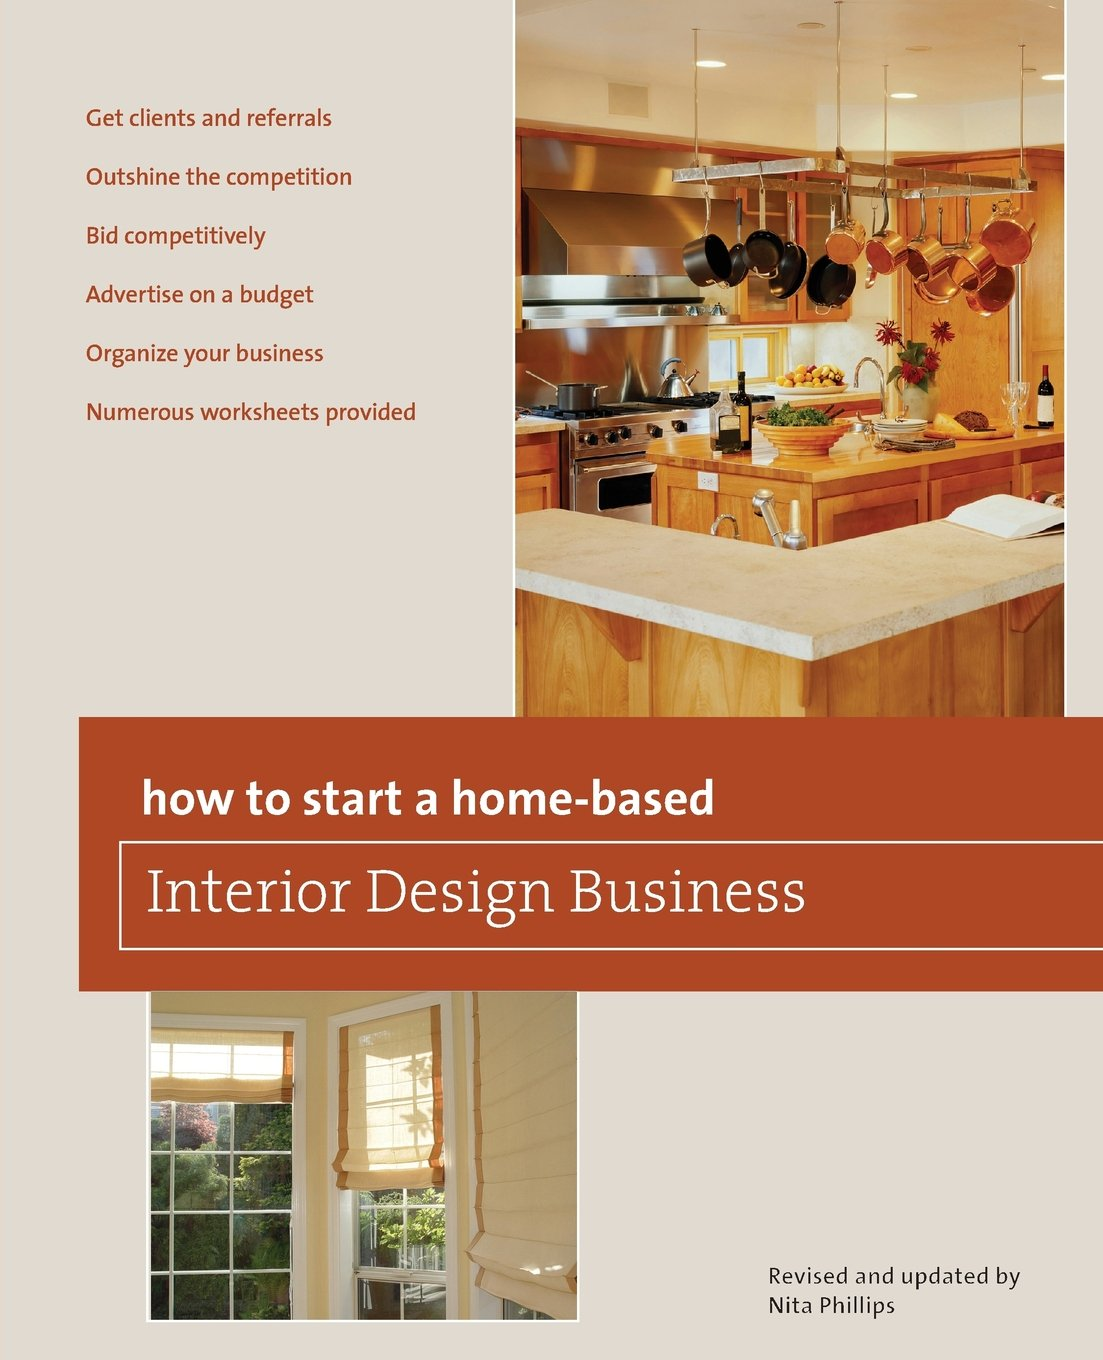 How To Start A Home Based Interior Design Business, 5th (Home Based Business  Series): Nita B. Phillips: 9780762750153: Amazon.com: Books